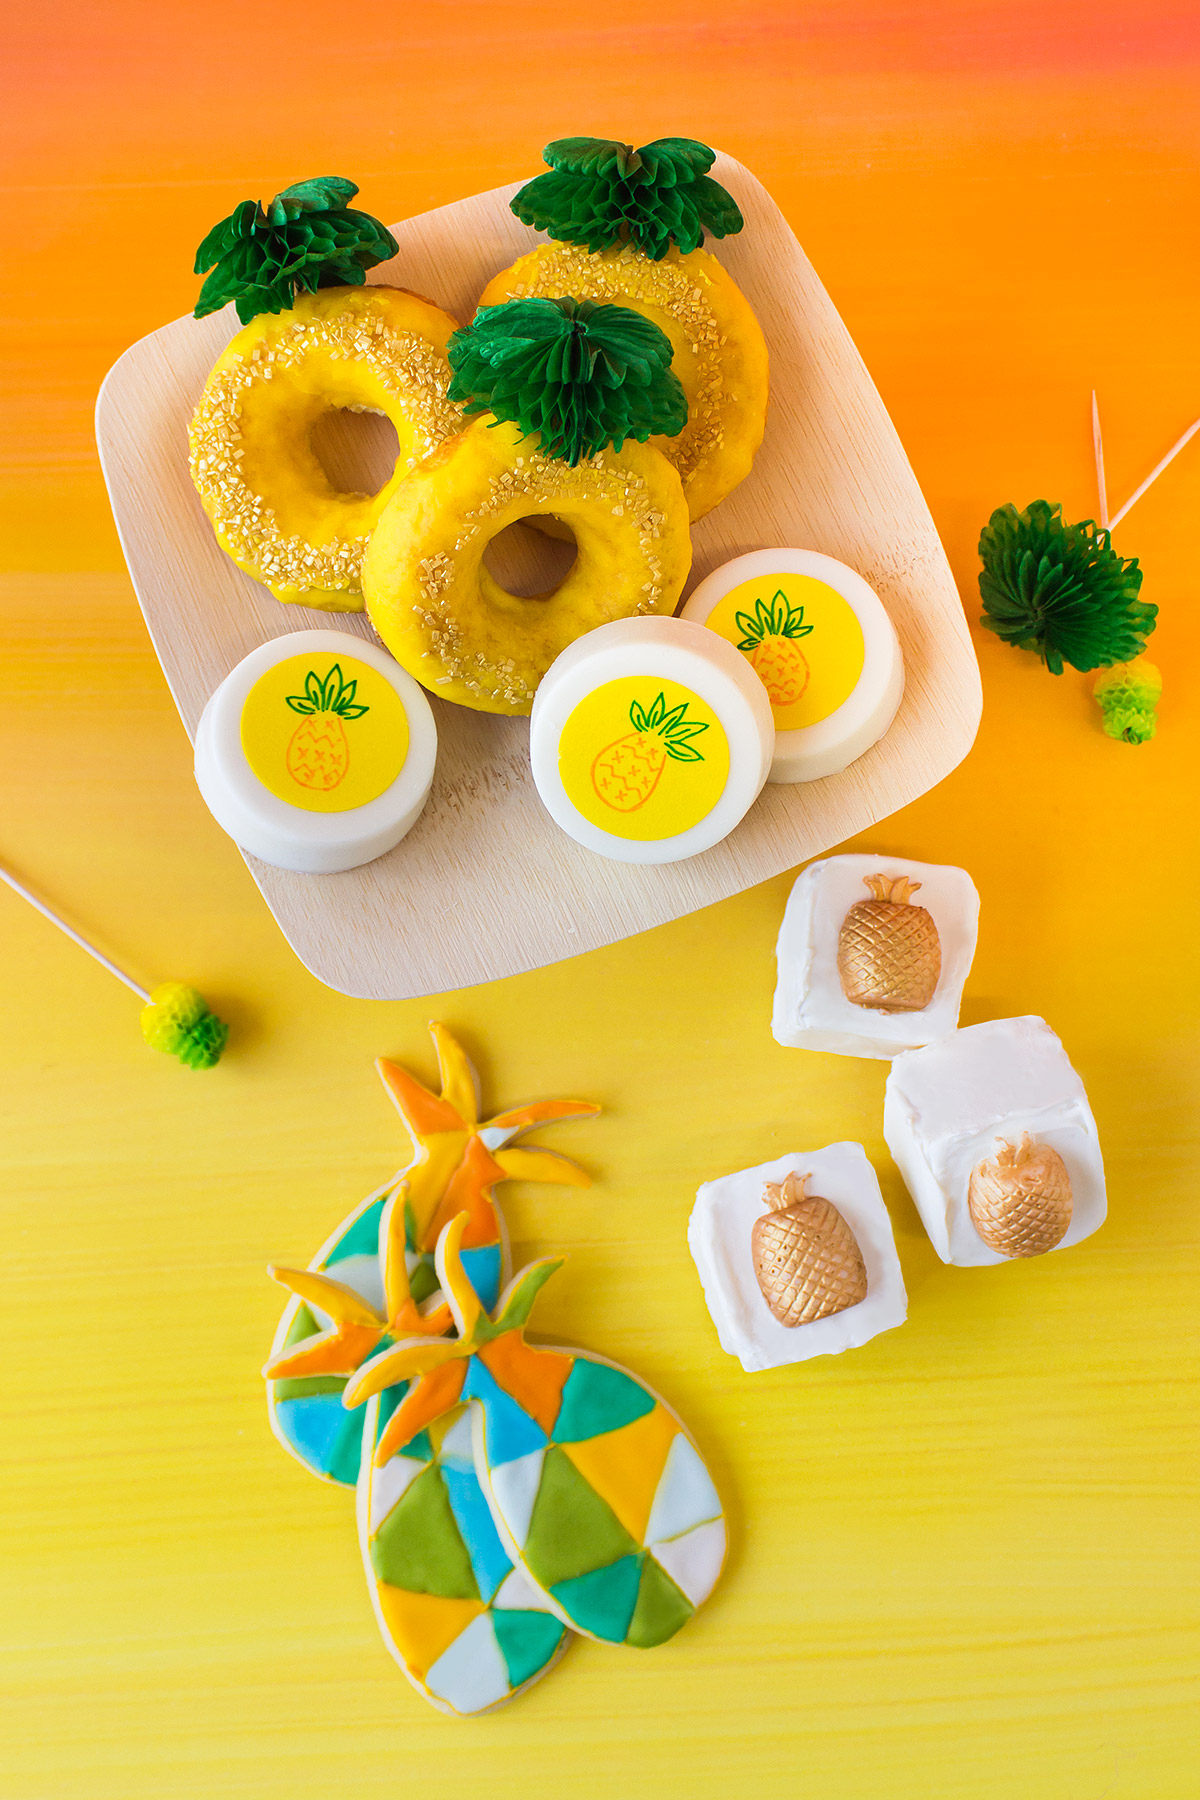 Spongebob Pineapple Baked Goods